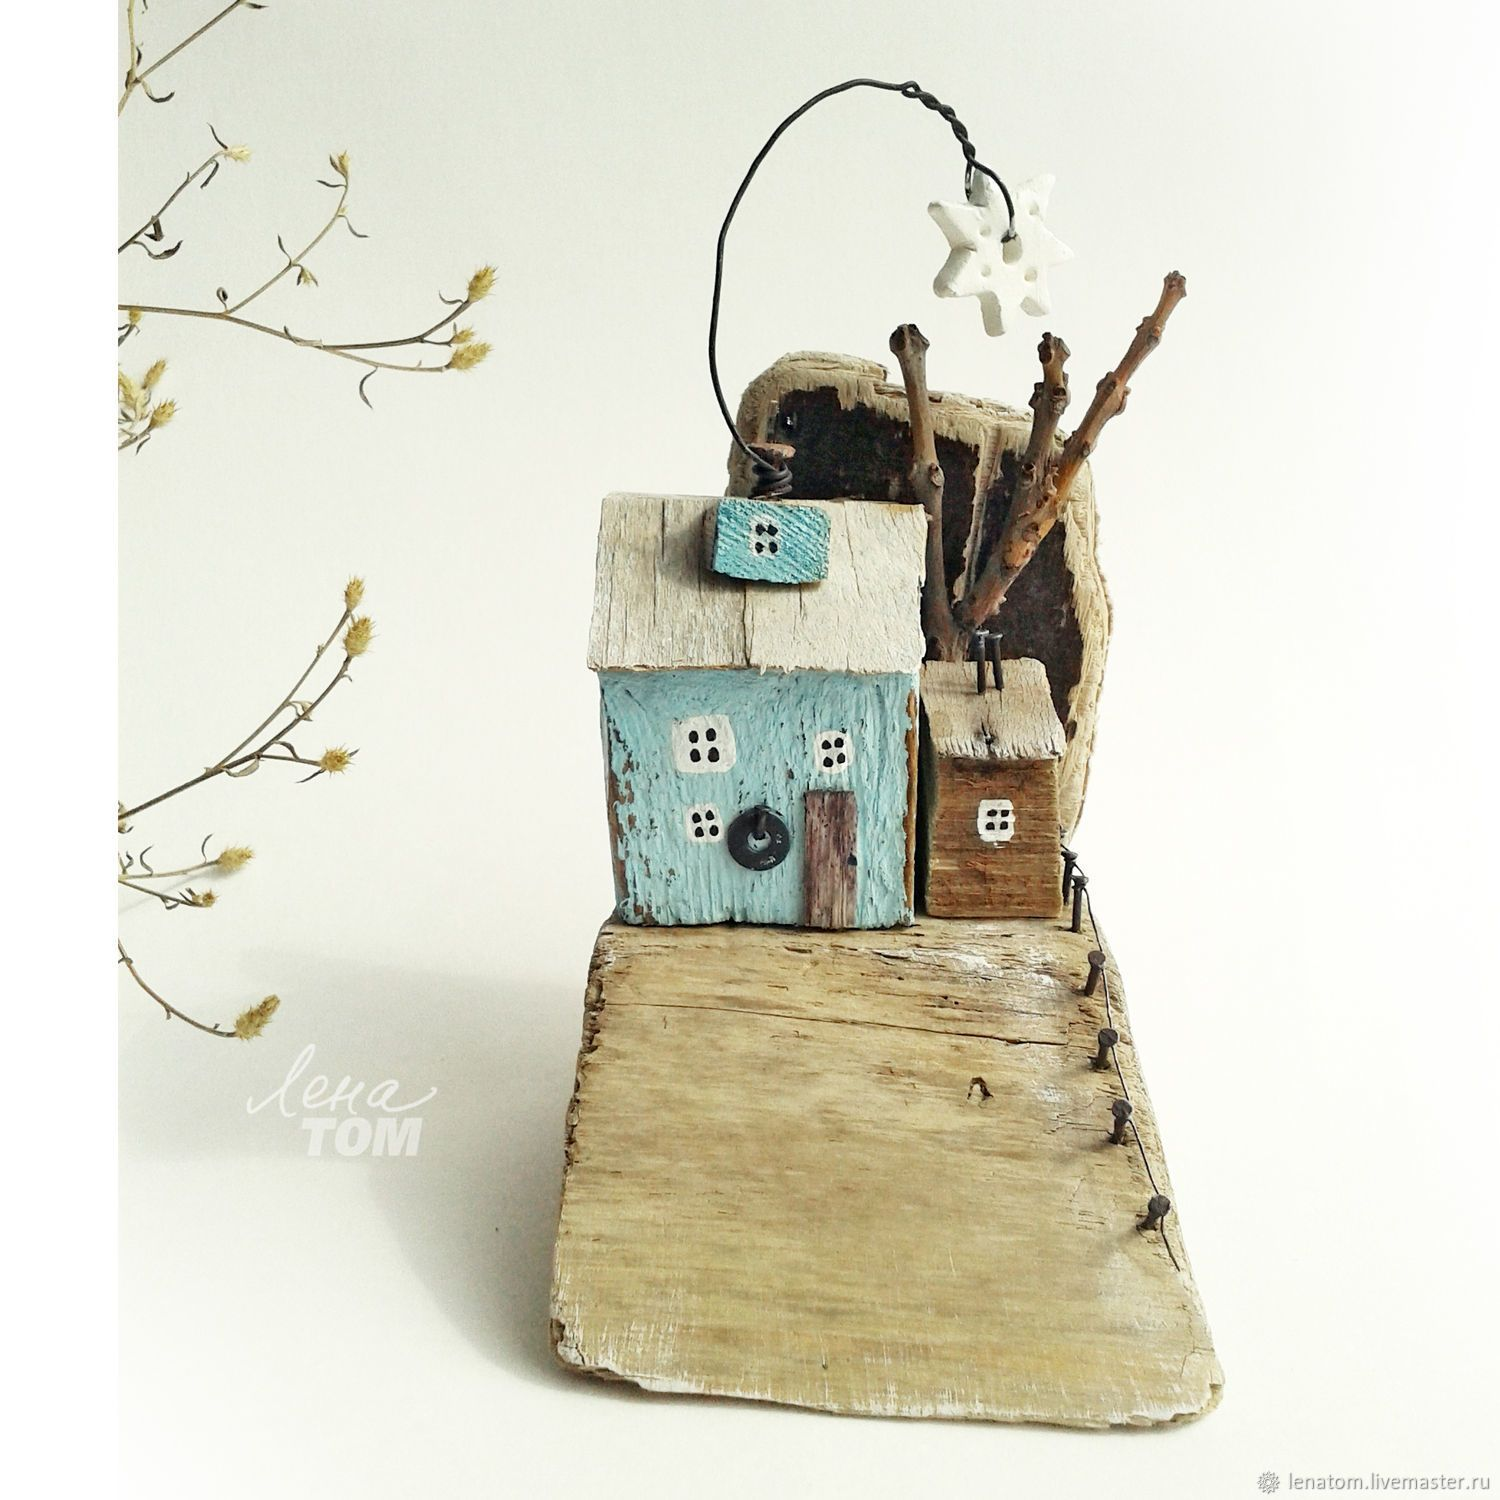 Pin von Lena Tom auf My driftwood-art, Handmade items | Pinterest ...